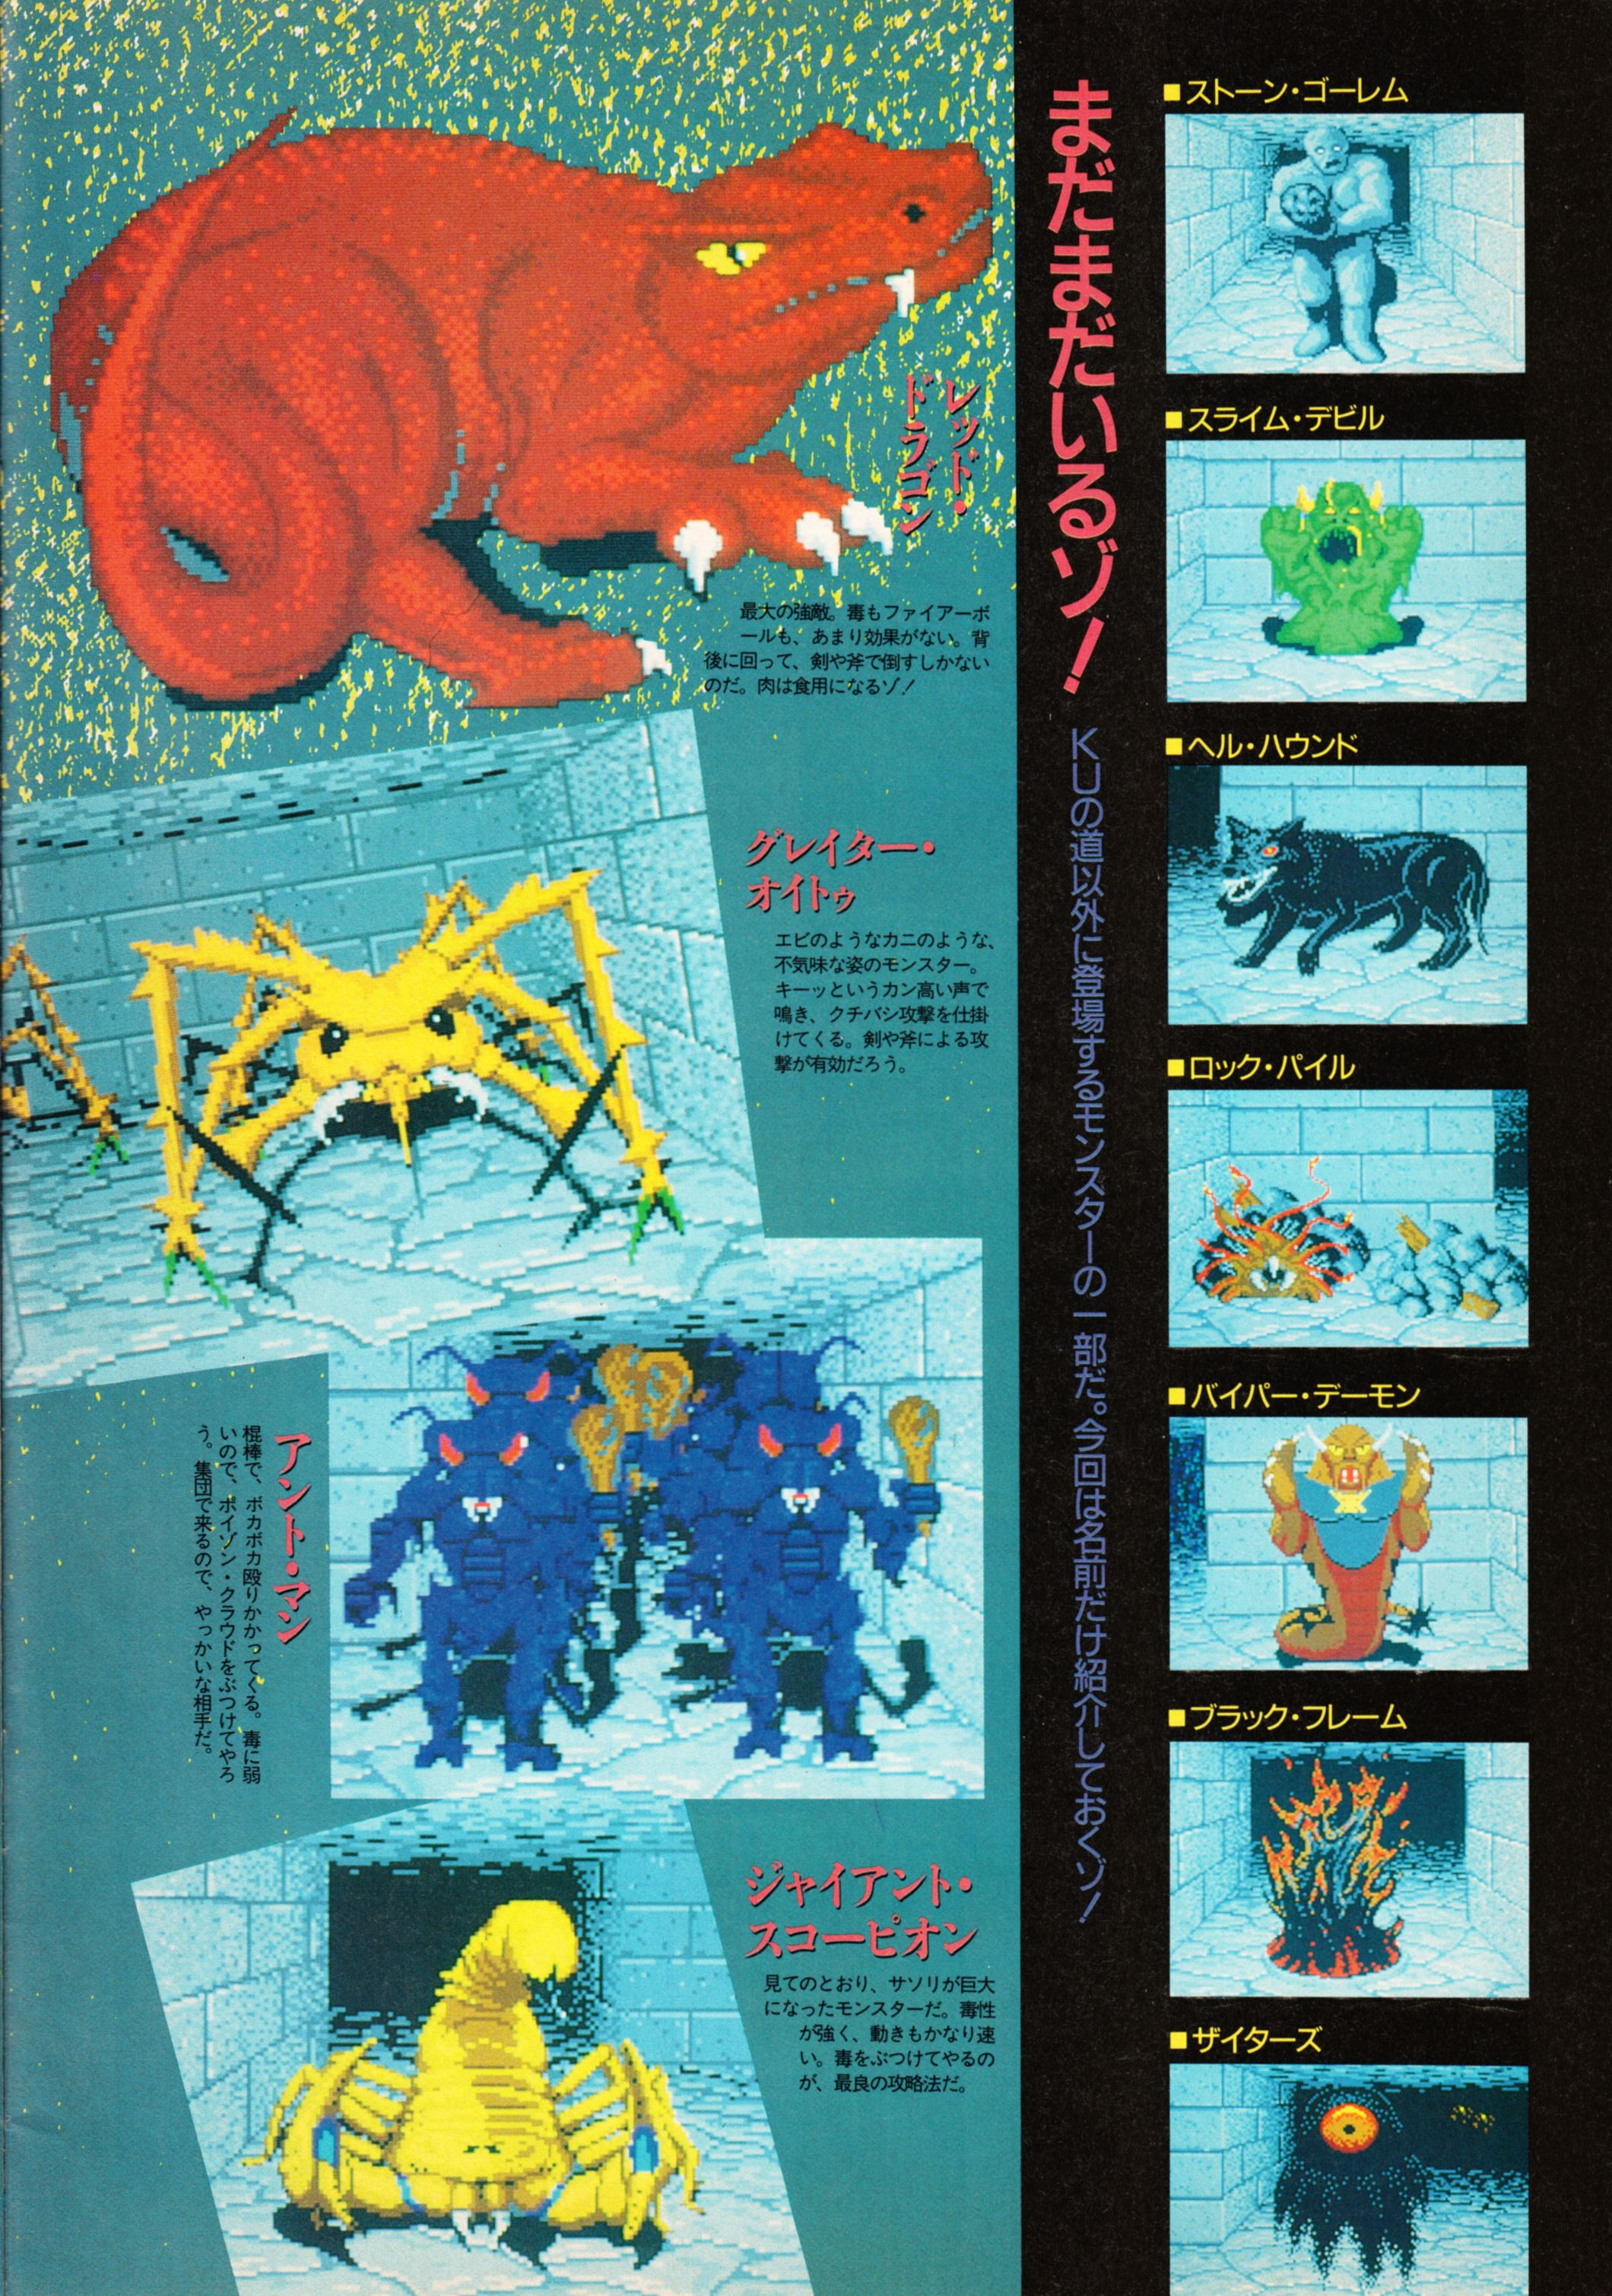 Supplement 1 - Chaos Strikes Back Companion Guide Guide published in Japanese magazine 'Popcom', Vol 9 No 2 01 February 1991, Page 17